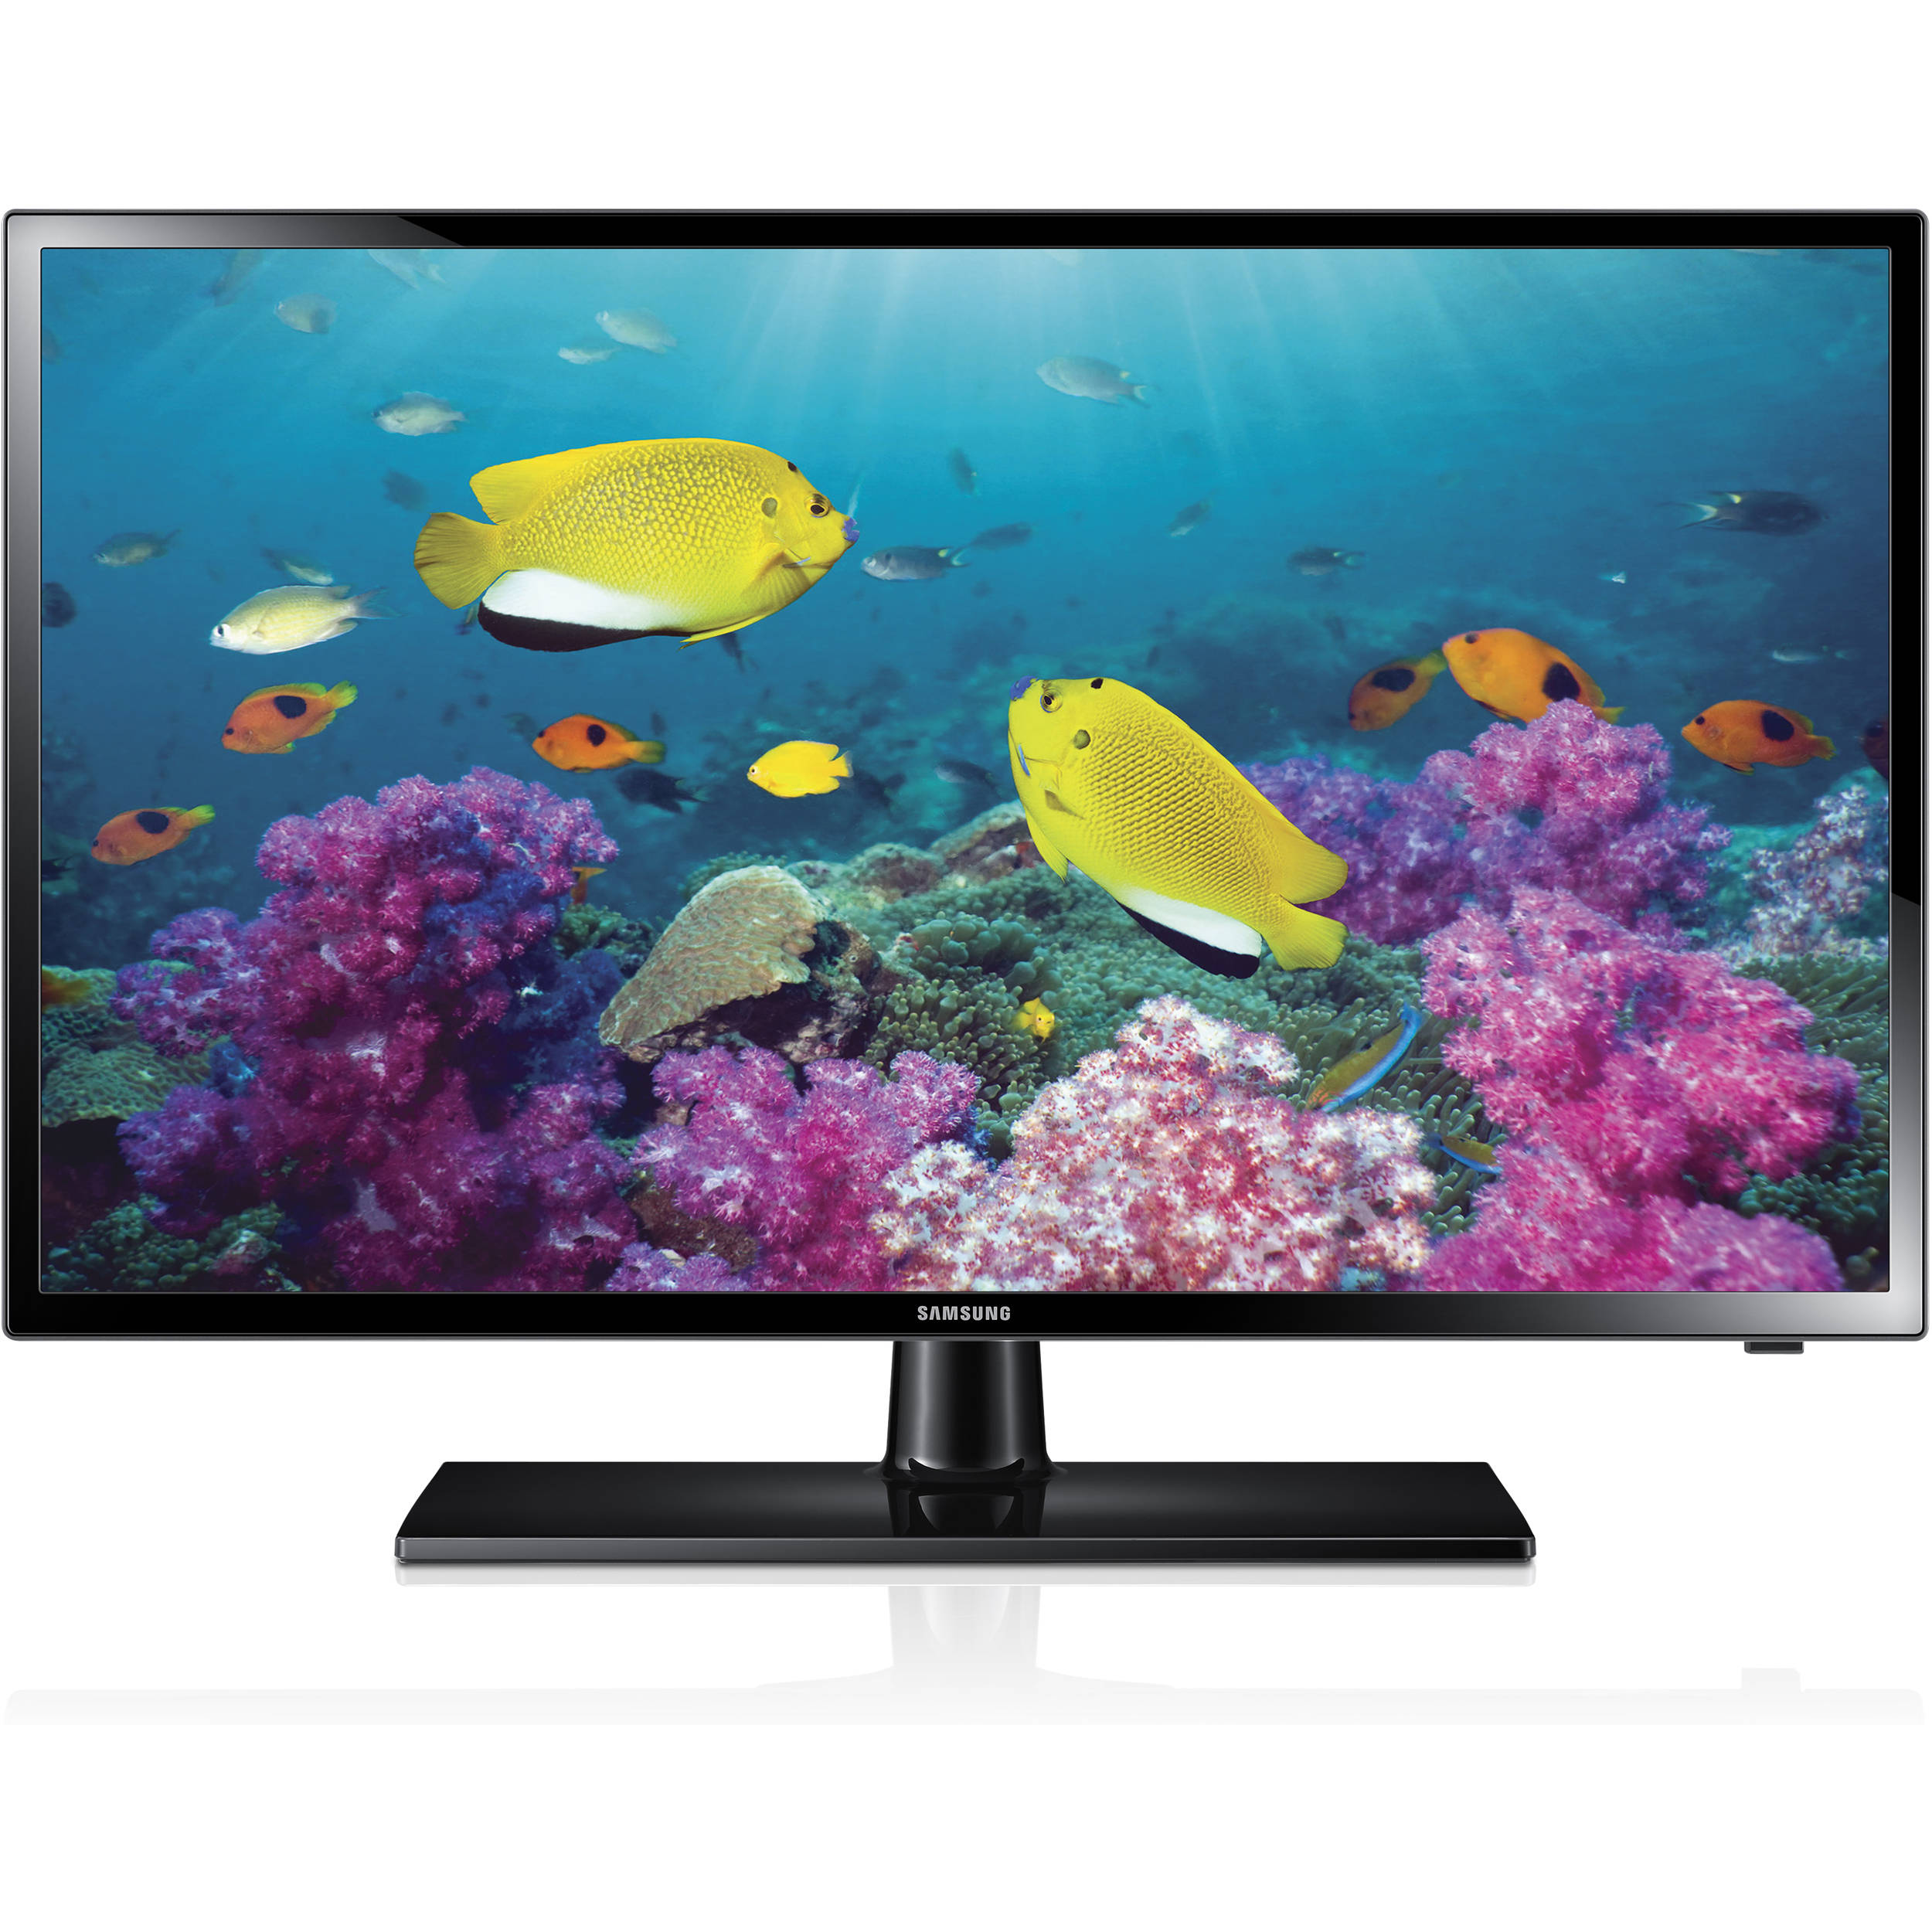 samsung 19 4000 series led tv un19f4000bfxza b h photo. Black Bedroom Furniture Sets. Home Design Ideas